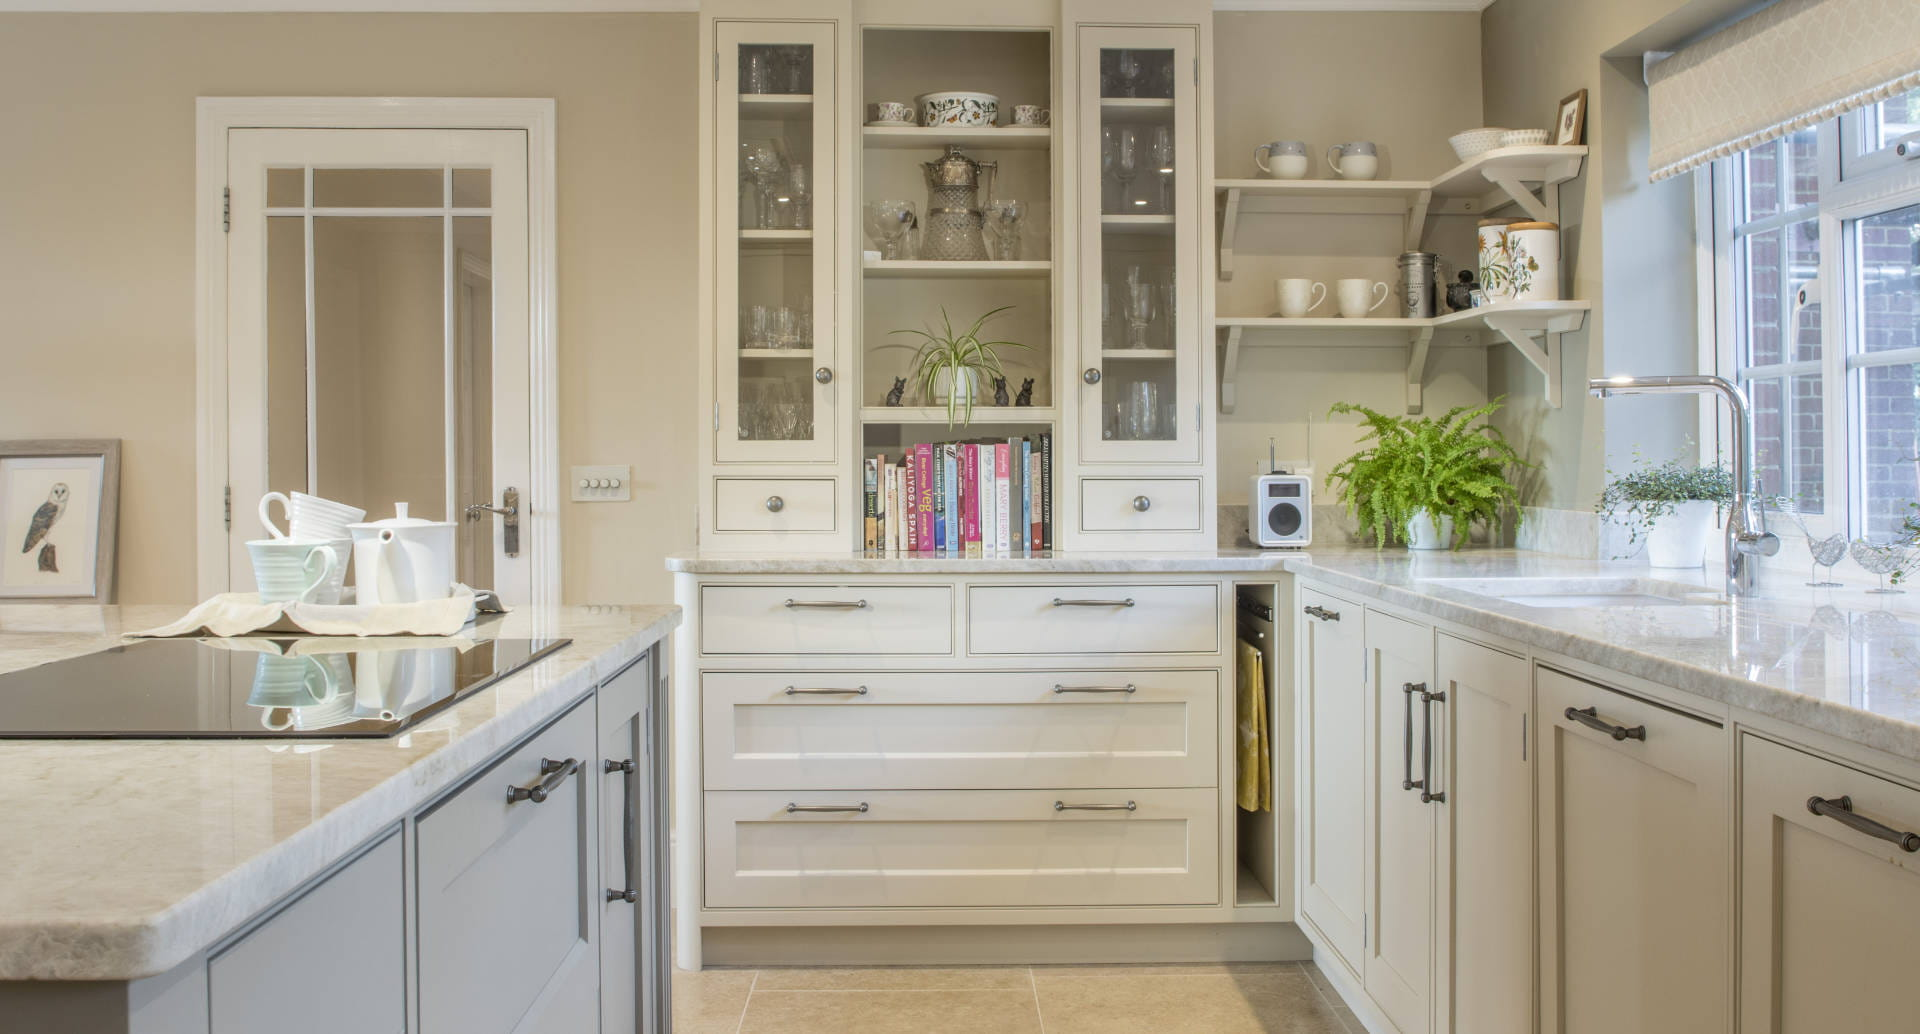 A kitchen side unit with surrounding counter tops.